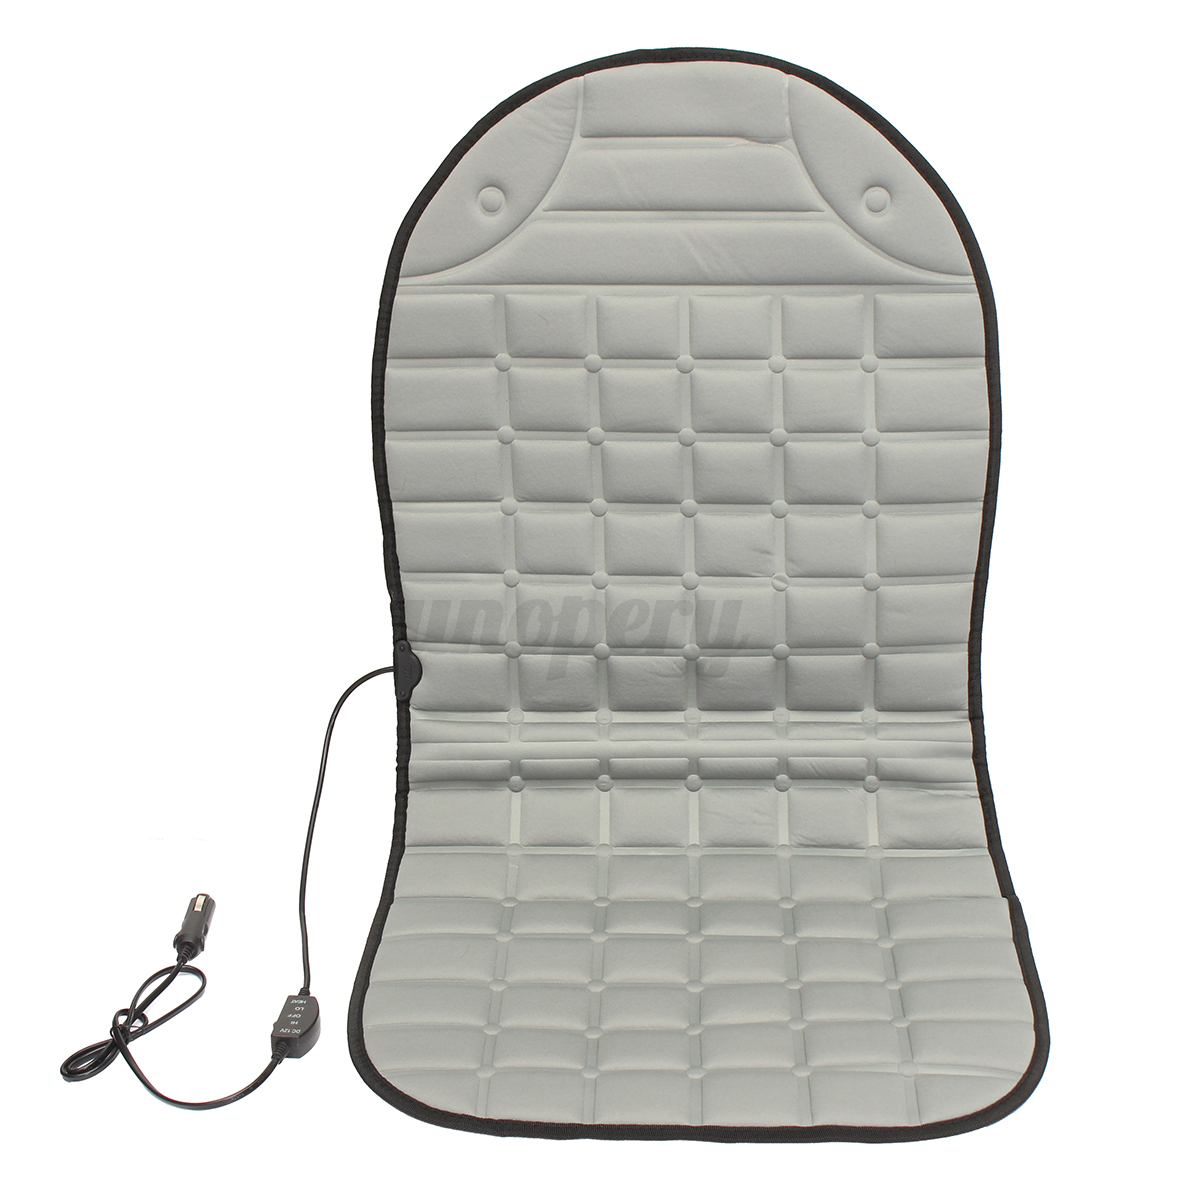 12v universal heated car seat heater heated cushion winter warmer cover pad new. Black Bedroom Furniture Sets. Home Design Ideas